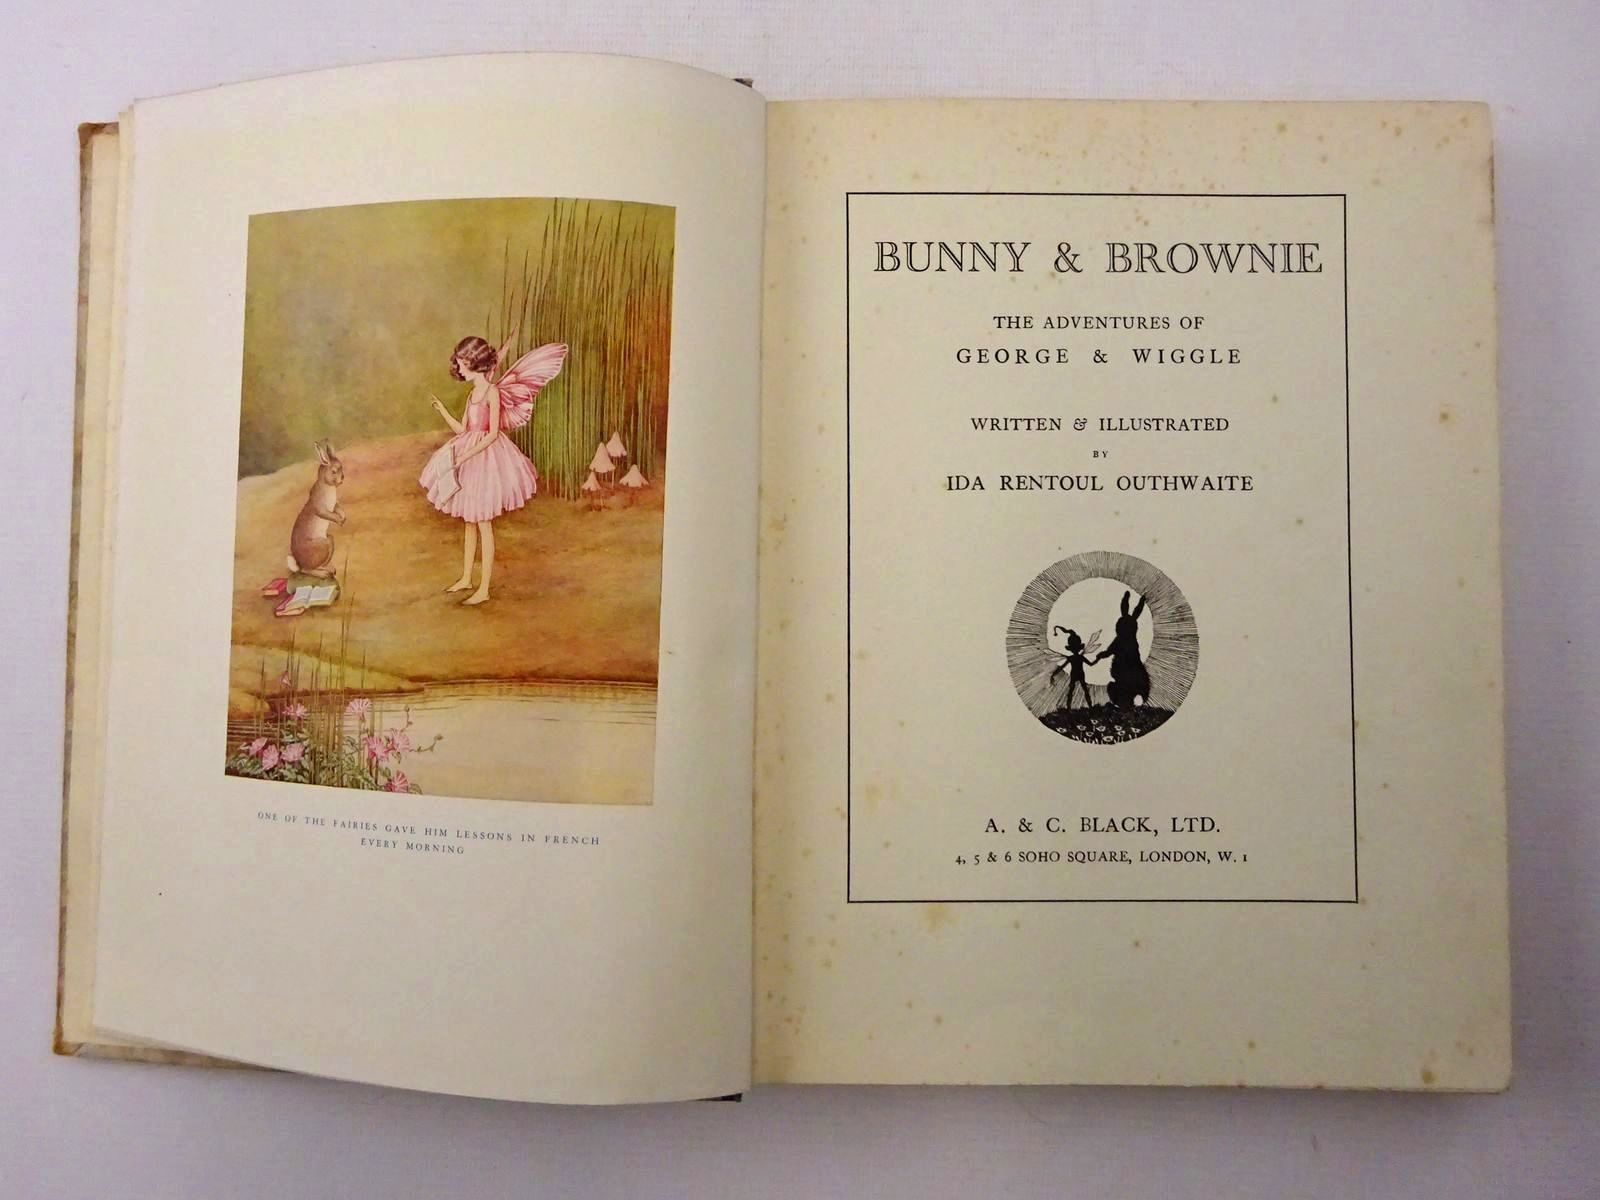 Photo of BUNNY AND BROWNIE THE ADVENTURES OF GEORGE AND WIGGLE written by Outhwaite, Ida Rentoul illustrated by Outhwaite, Ida Rentoul published by A. & C. Black Ltd. (STOCK CODE: 2124511)  for sale by Stella & Rose's Books